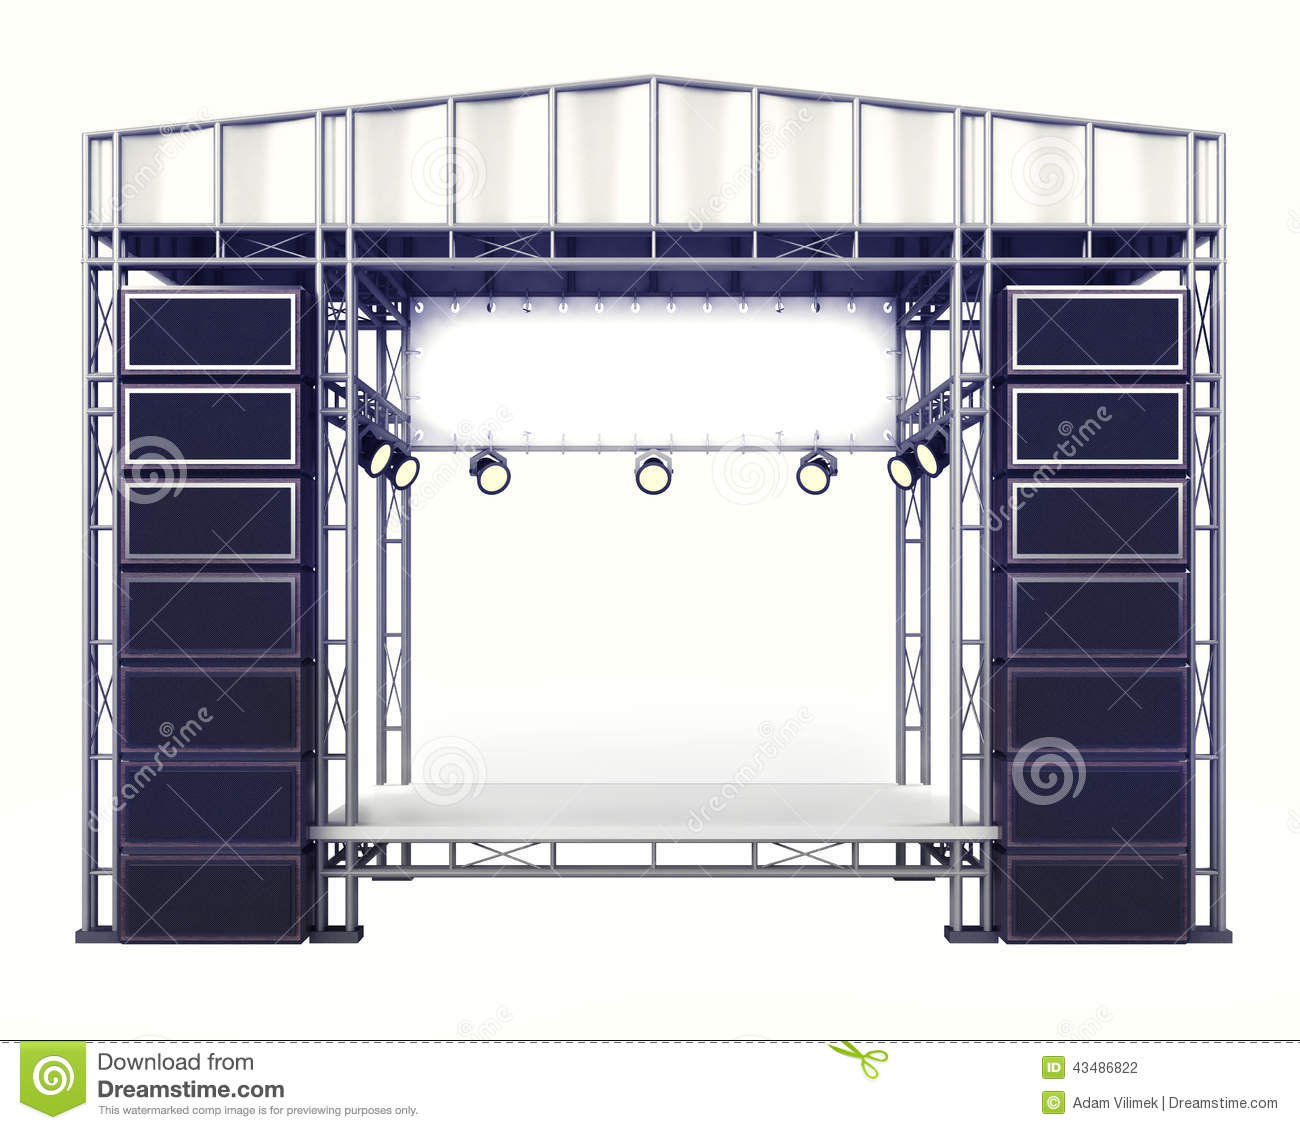 Staging Of Steel Images : Concert stage steel construction with speakers on white